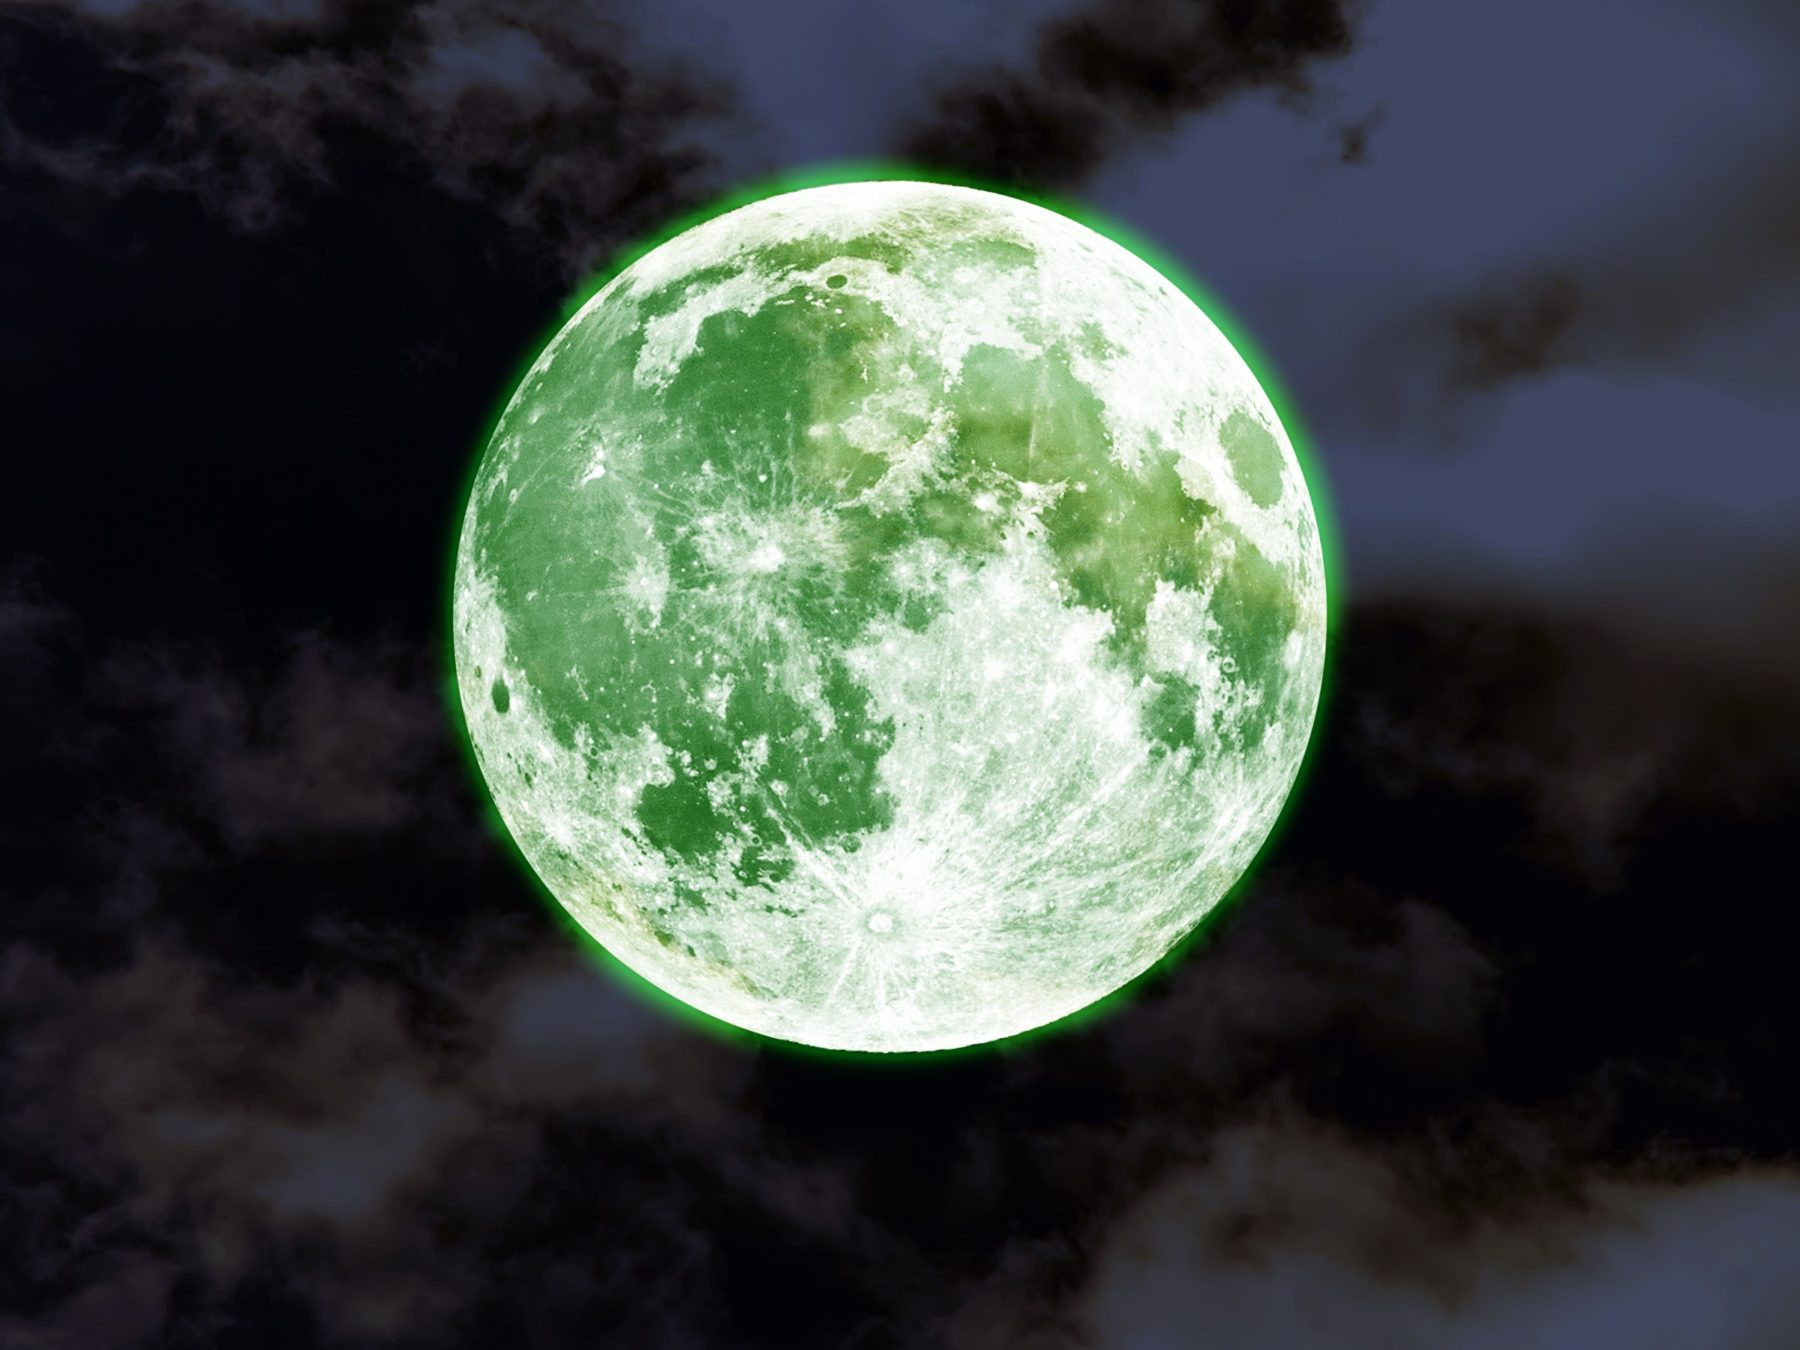 The moon will turn green.